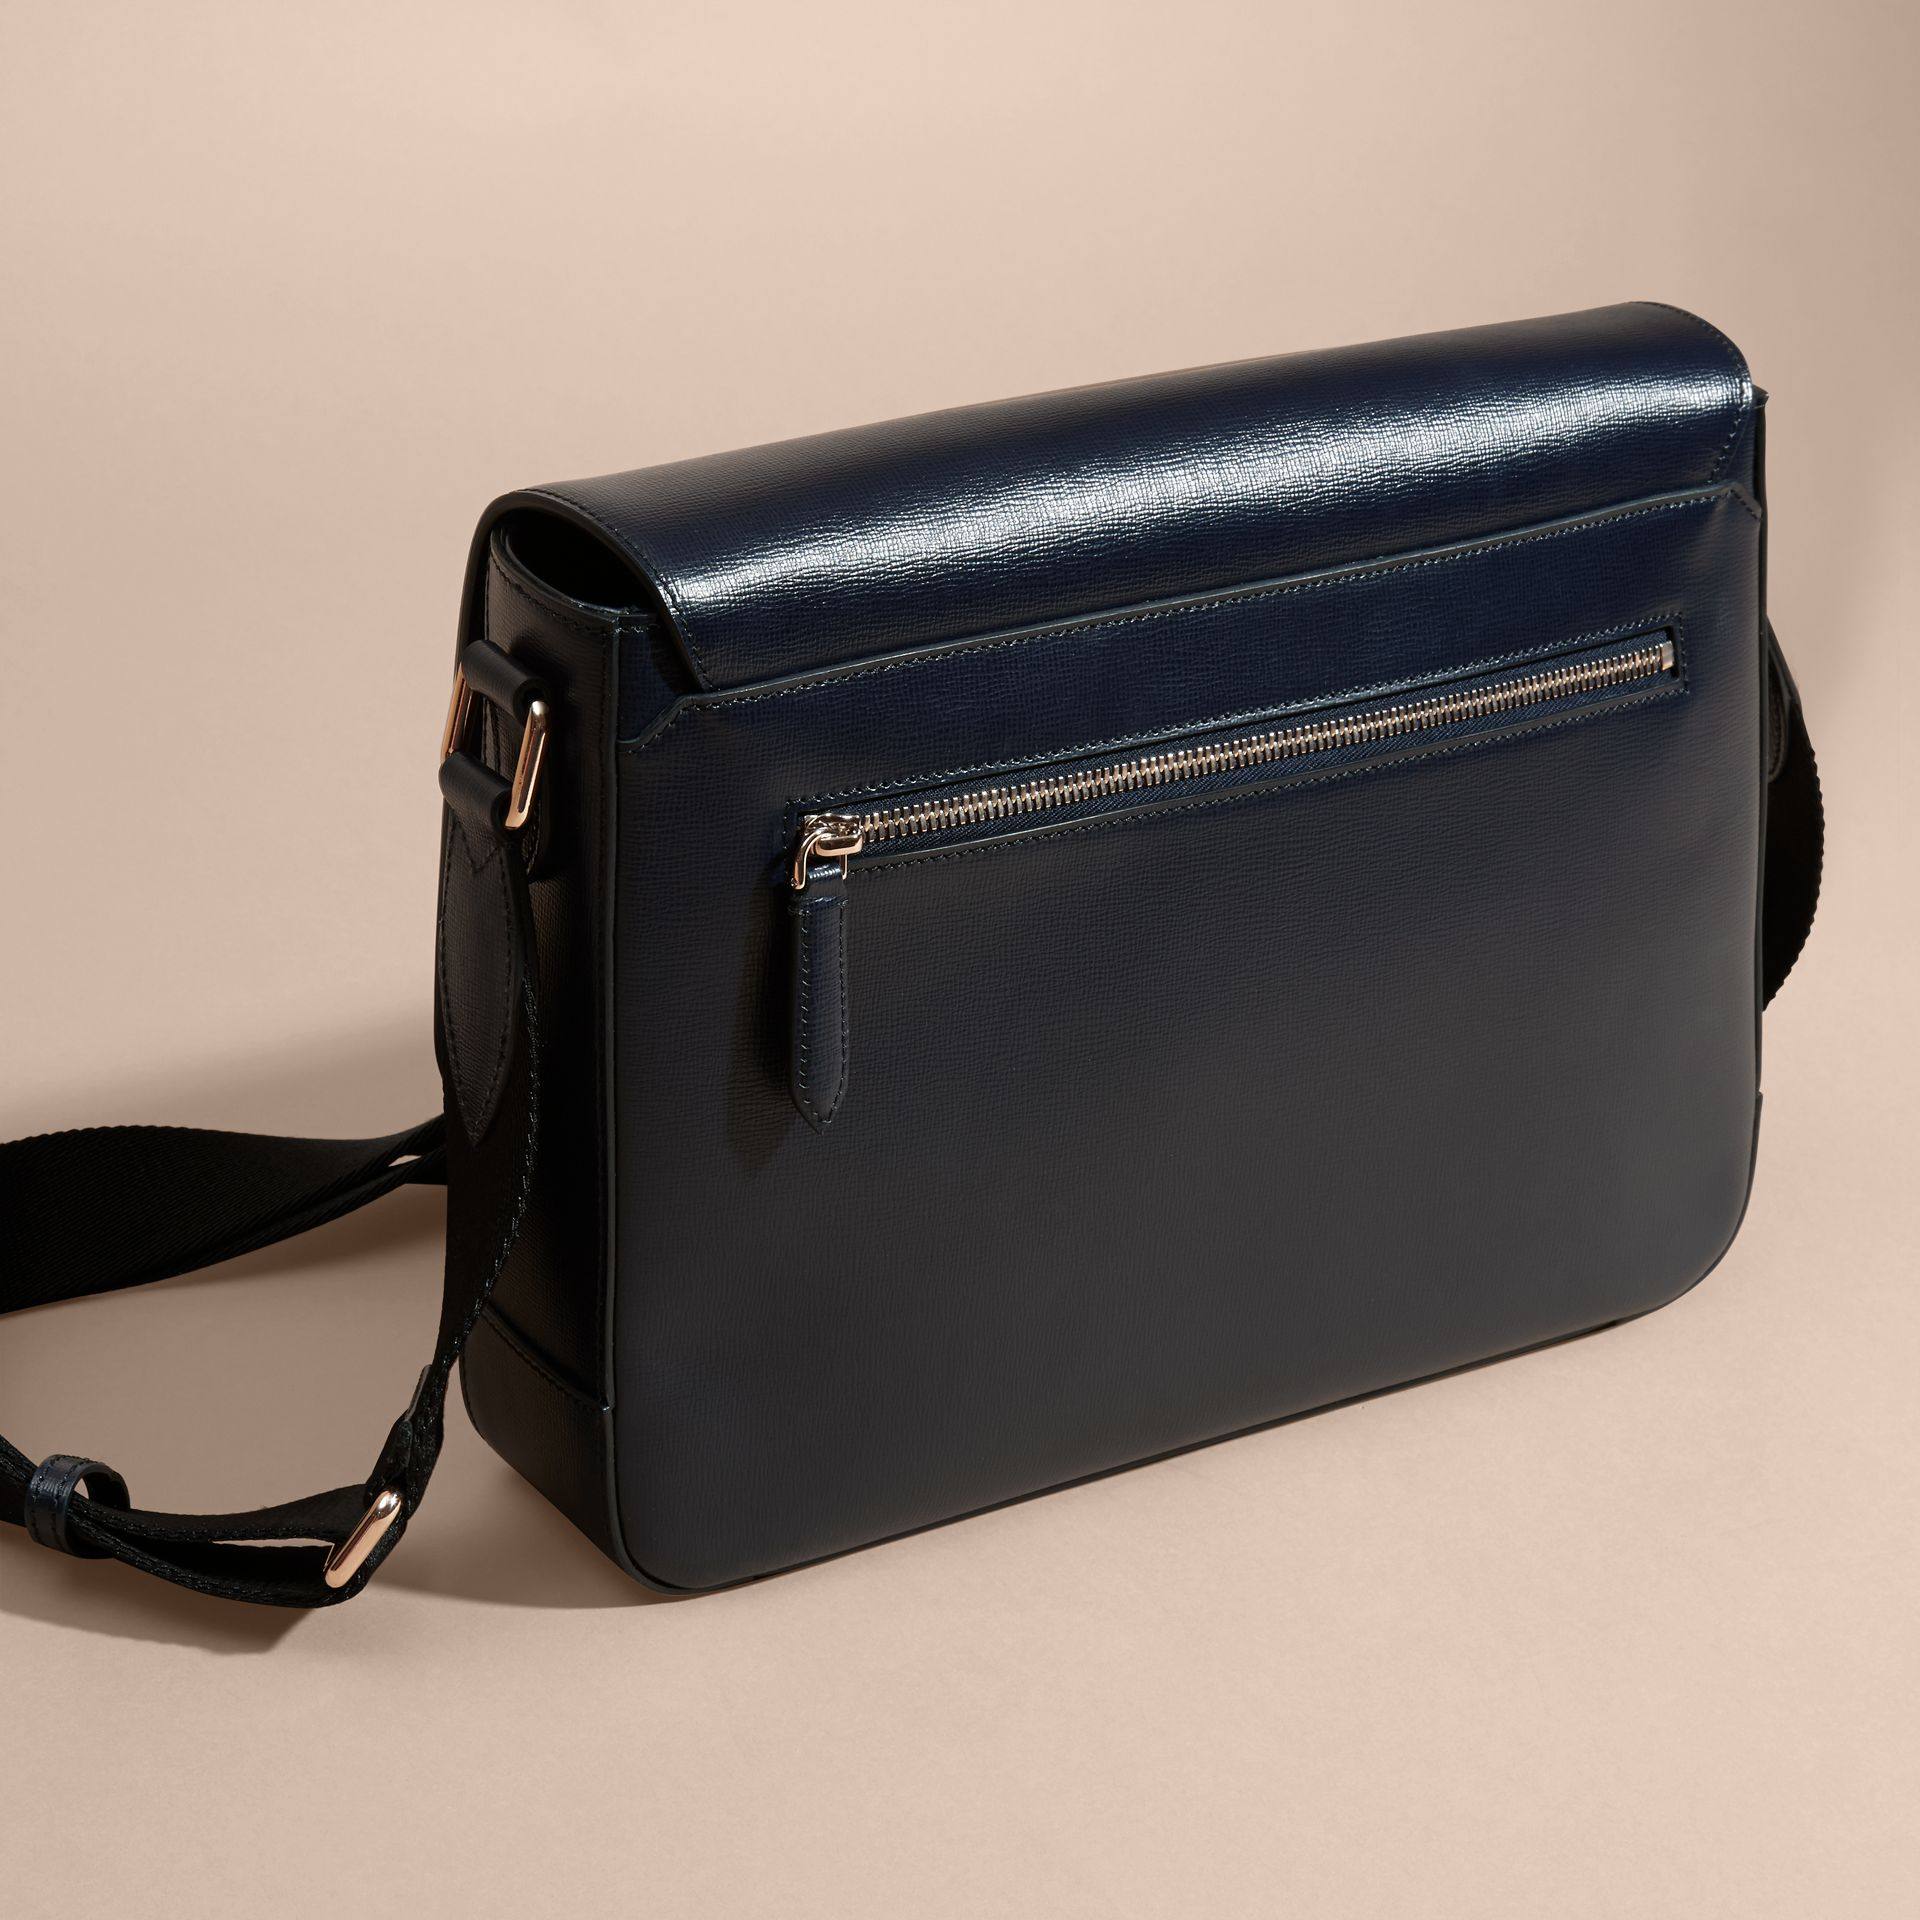 Medium London Leather Messenger Bag Dark Navy - gallery image 4